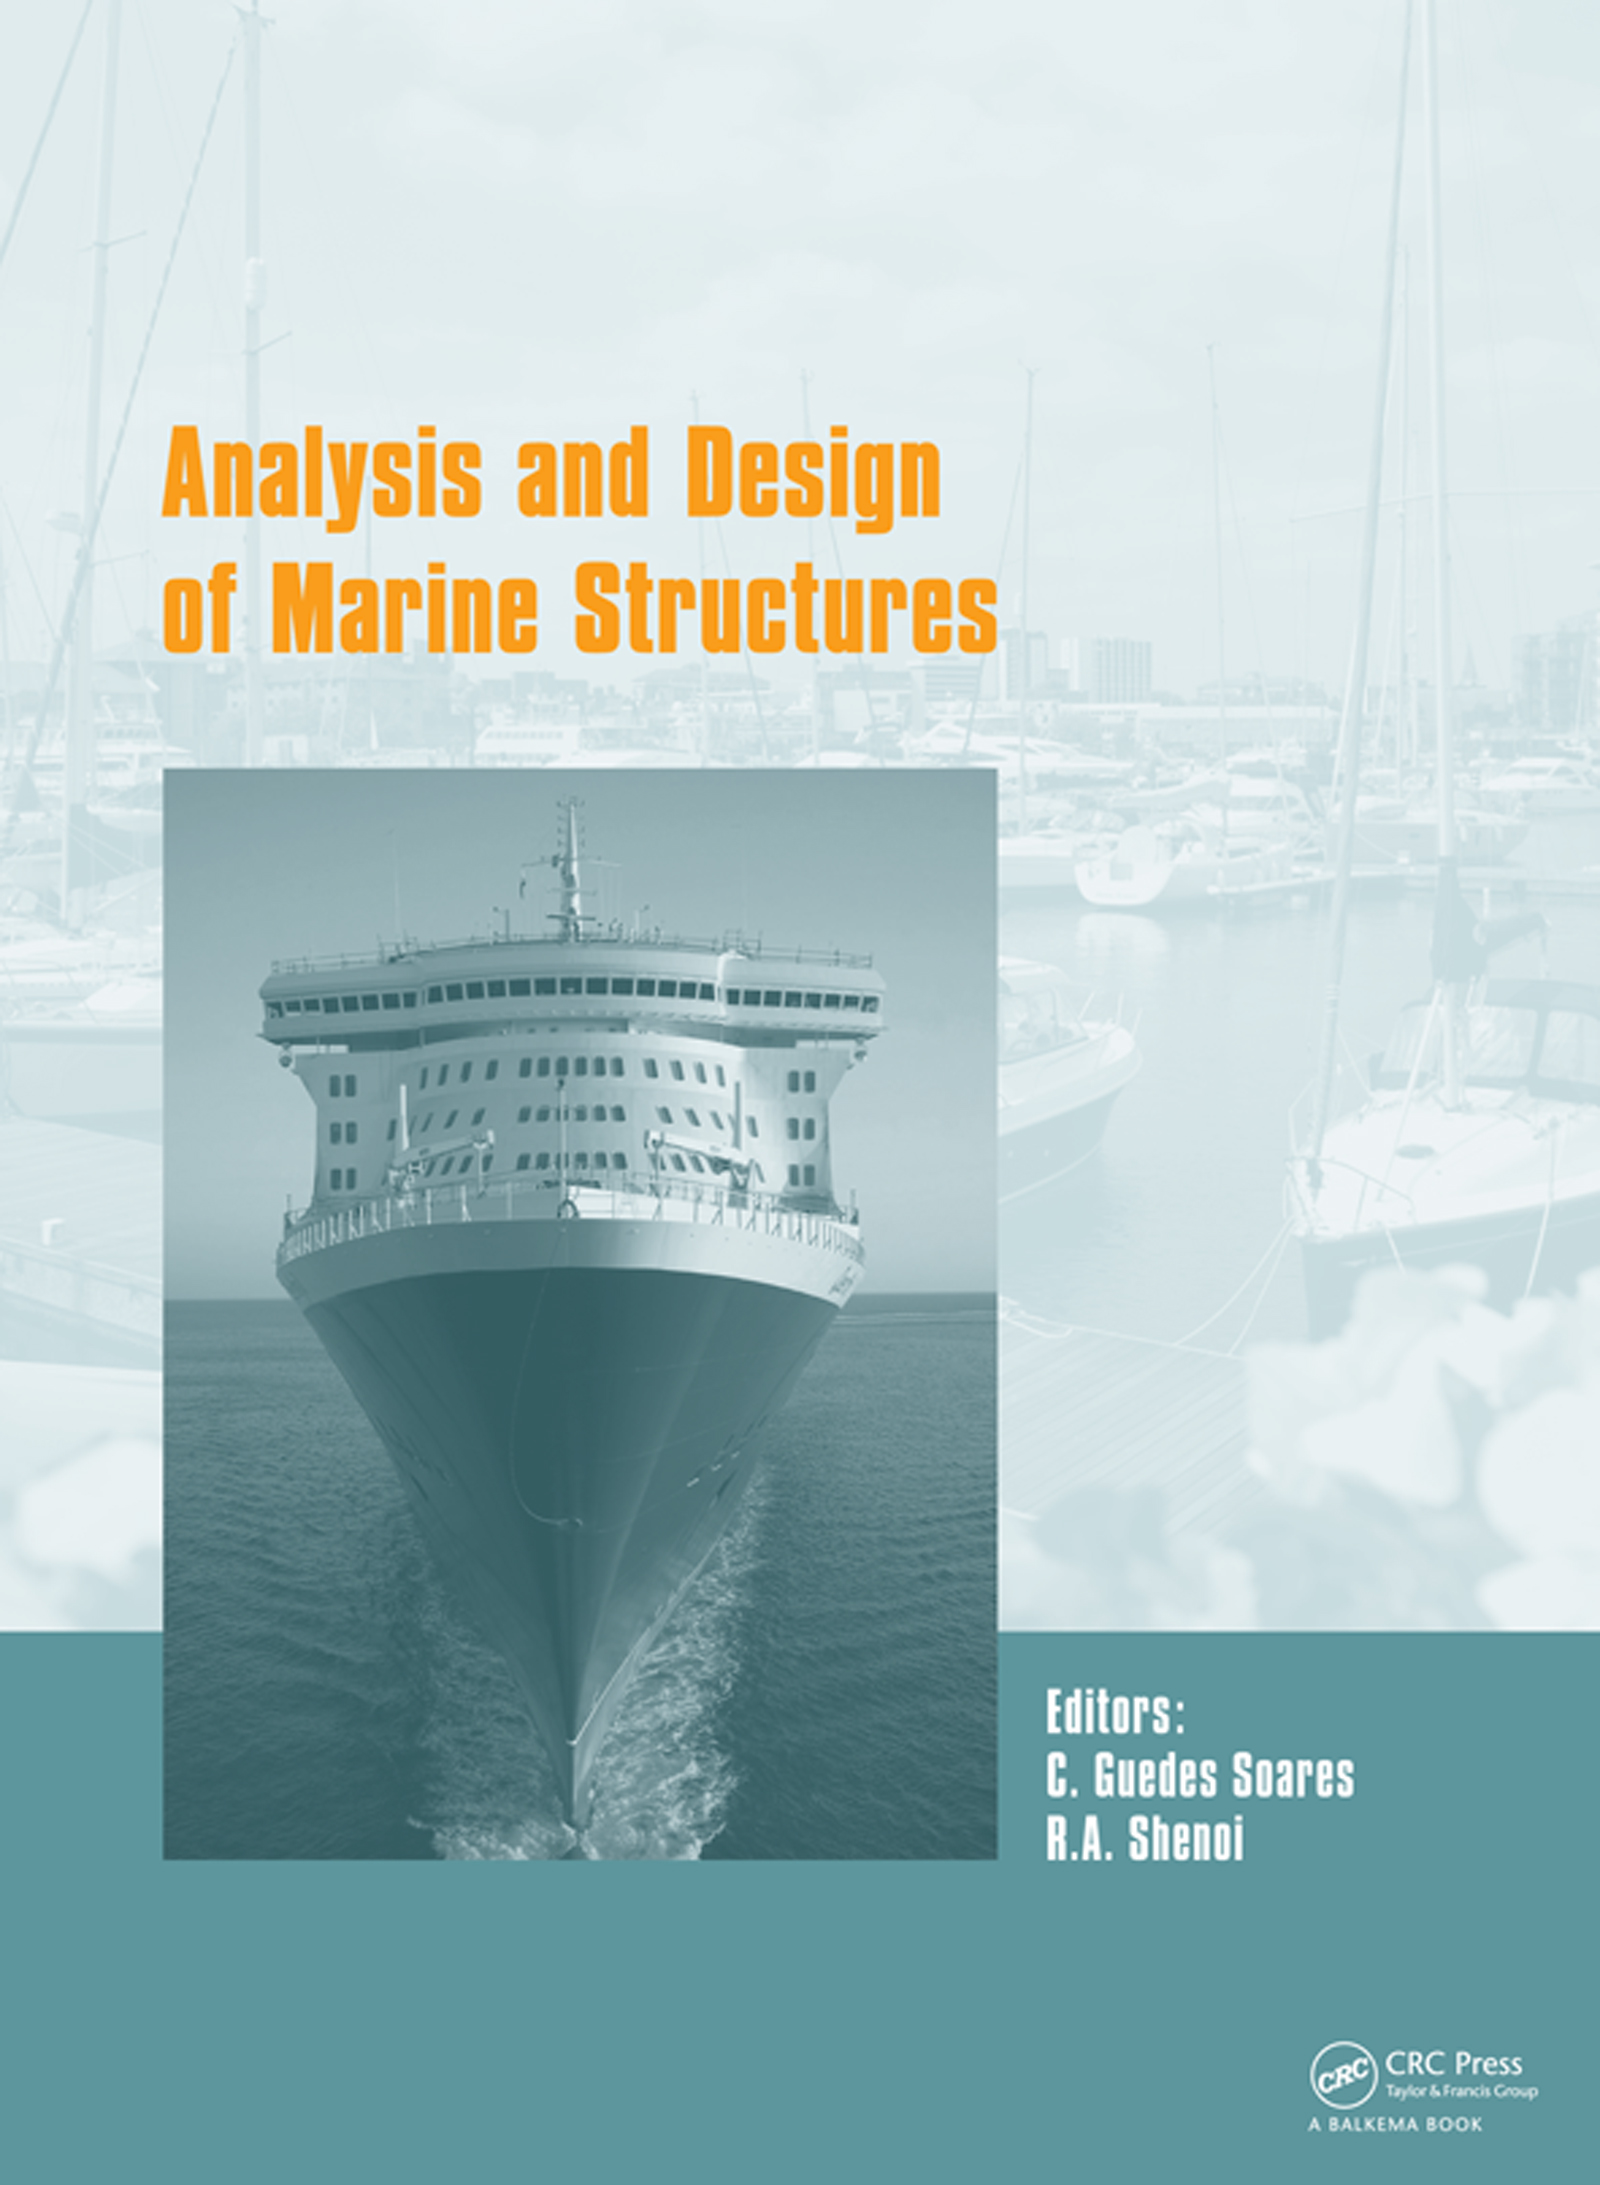 A study of cross deck effects on warping stresses in large container ships